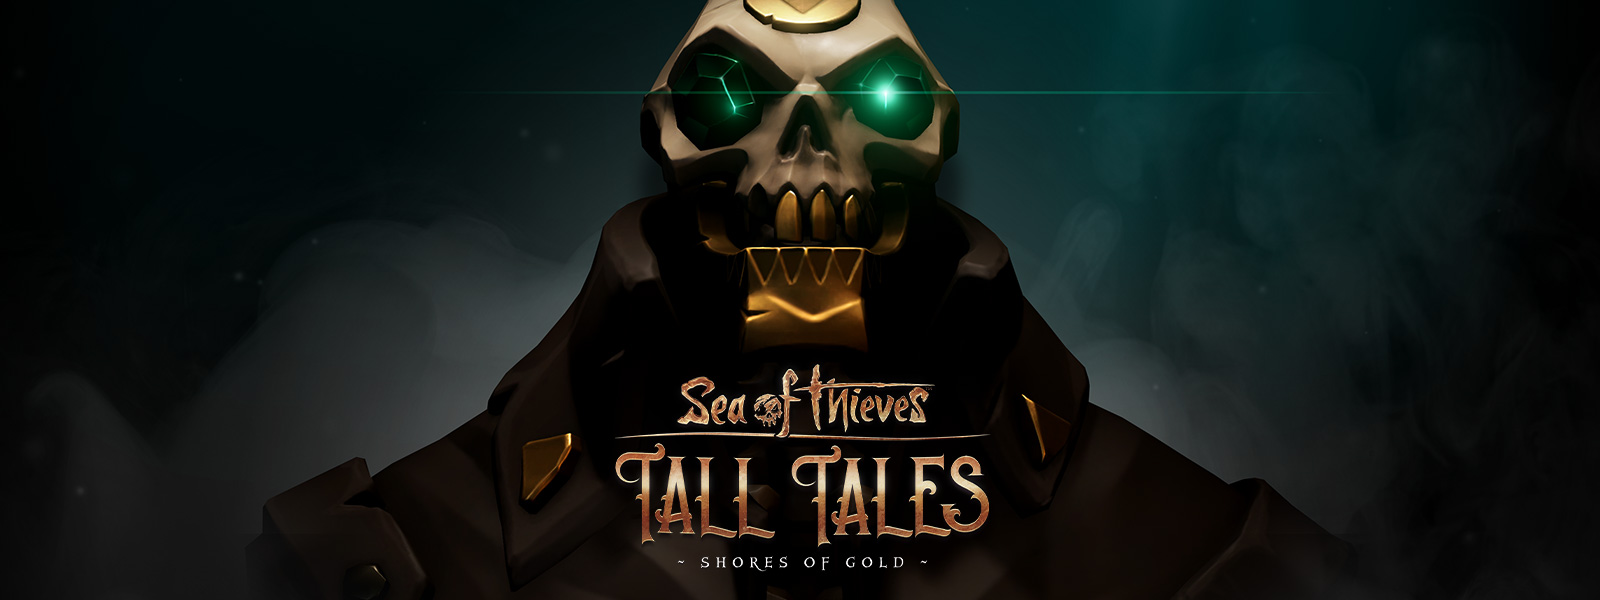 Logo Sea of Thieves Shores of Gold sur un pirate squelette avec des dents en or et des yeux d'émeraude